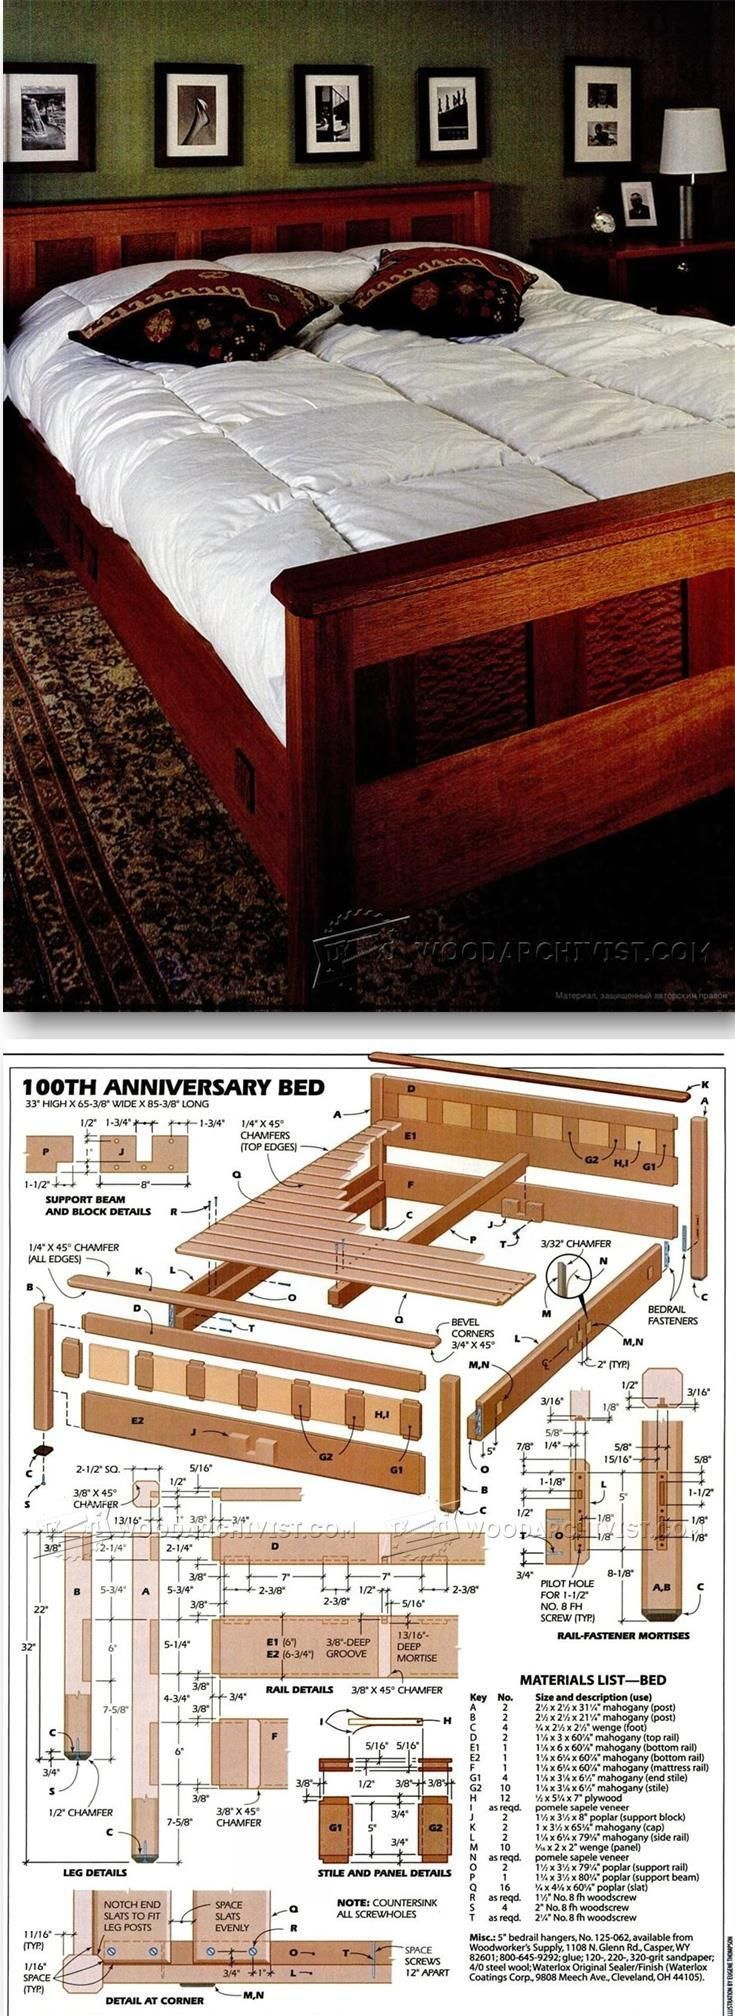 Bedroom Furniture Plans - Furniture Plans and Projects | http://WoodArchivist.com